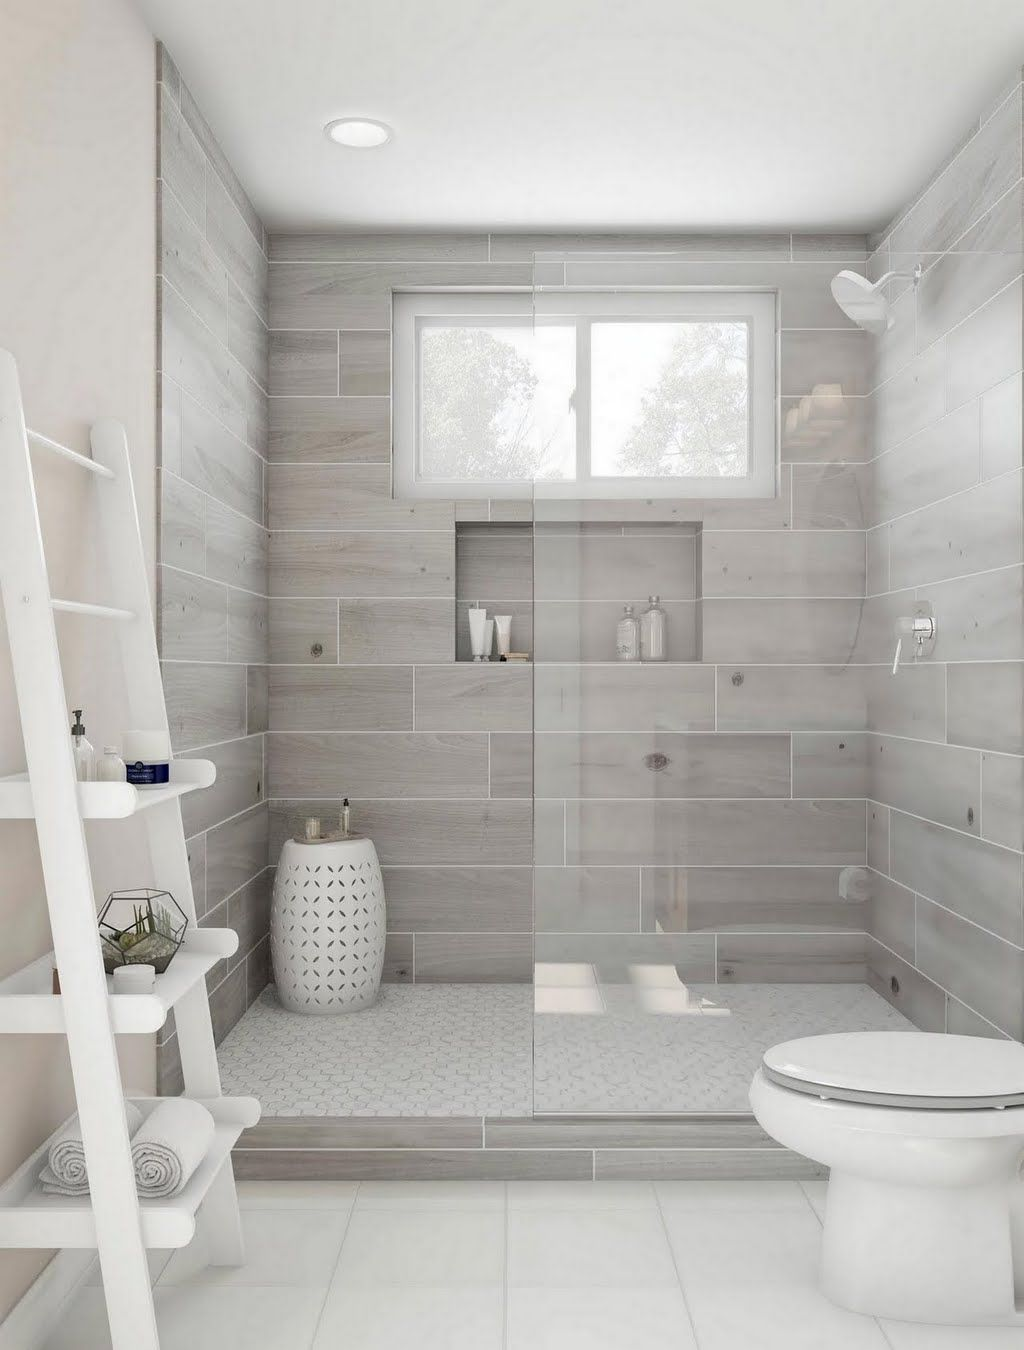 home depot bathroom tile ideas havenwood platinum 8 in x 36 in glazed porcelain floor and wall tile 14 sq ft case 4799